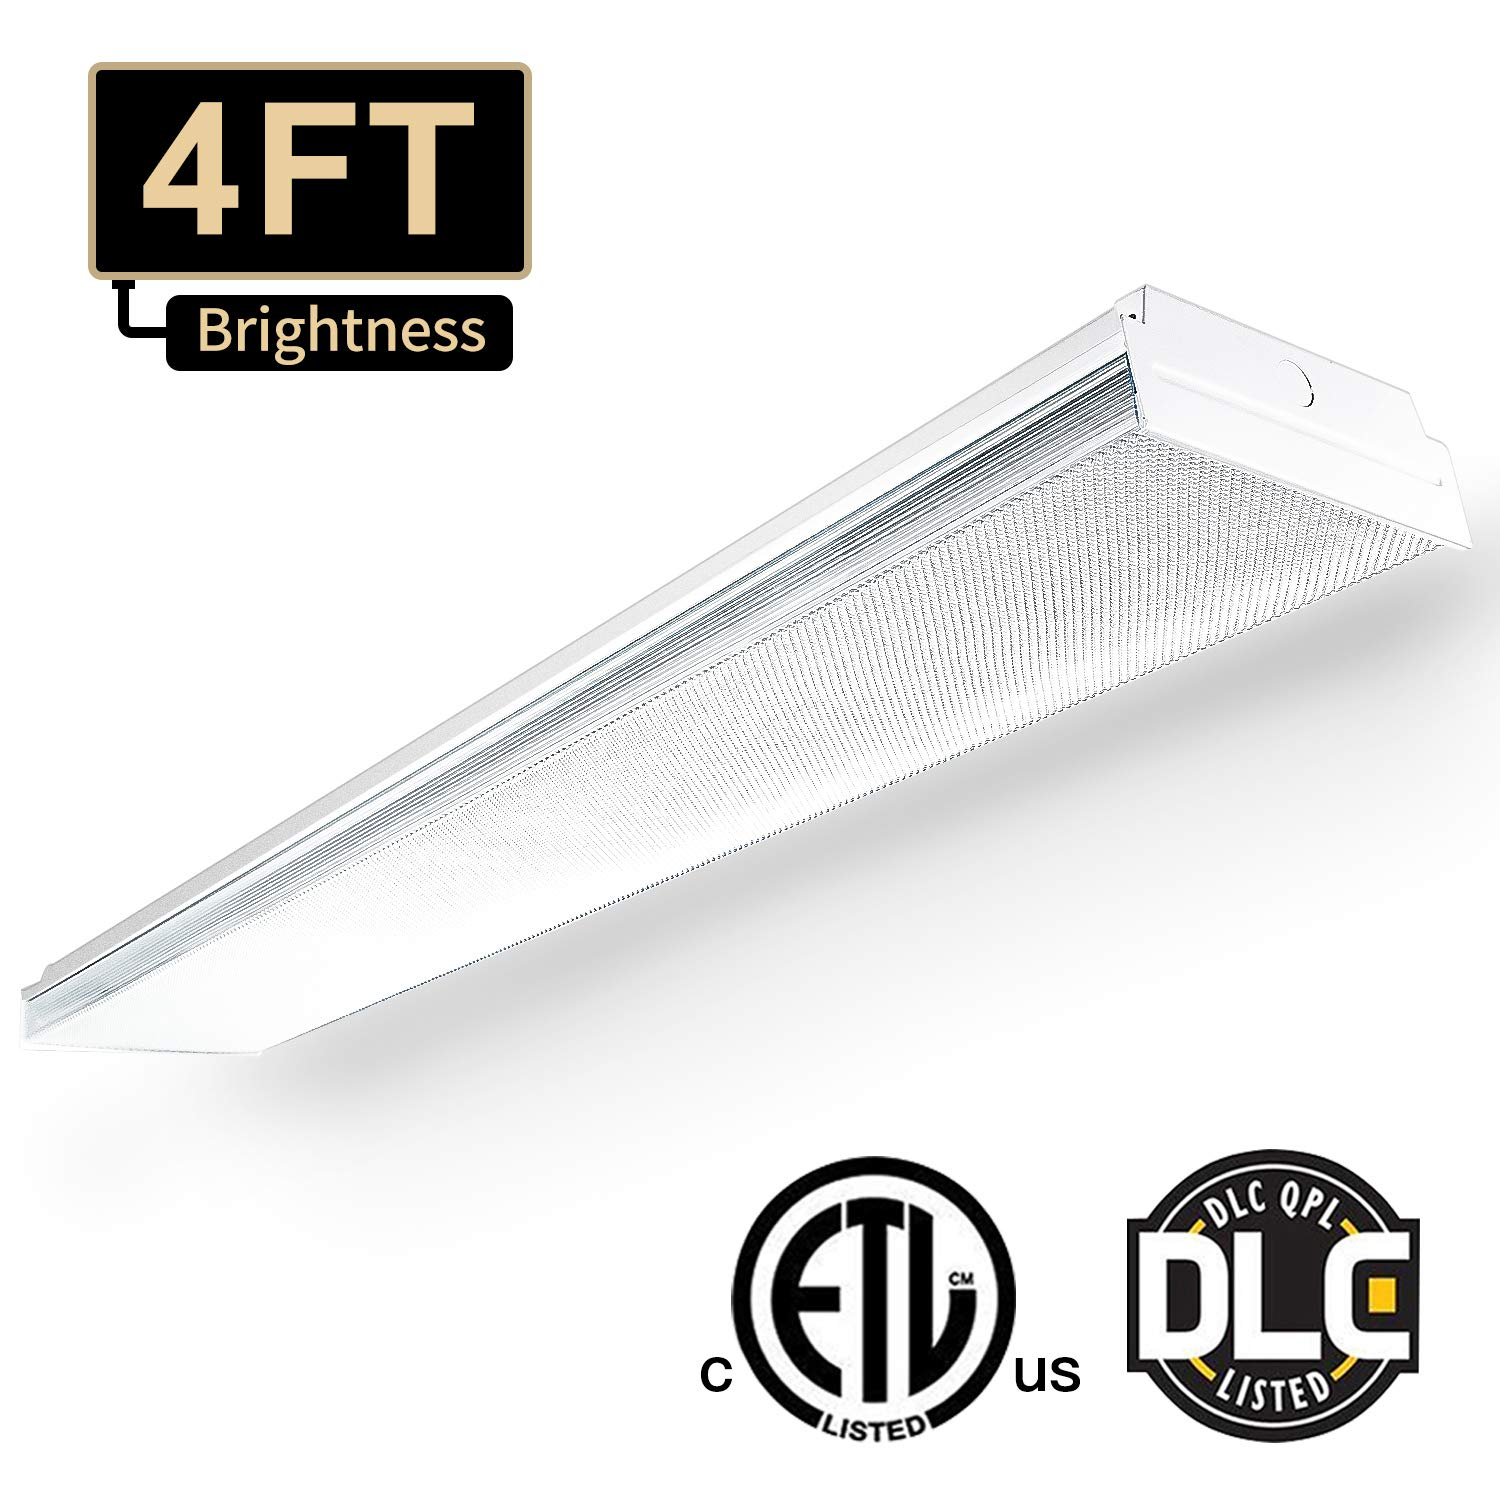 4FT LED Wraparound Flushmount Light 5000 Lumens Linkable LED Shop Lights, 60W 5000K ETL and DLC Certified Mount Ceiling Light LED Wrap Light for Workshop Base